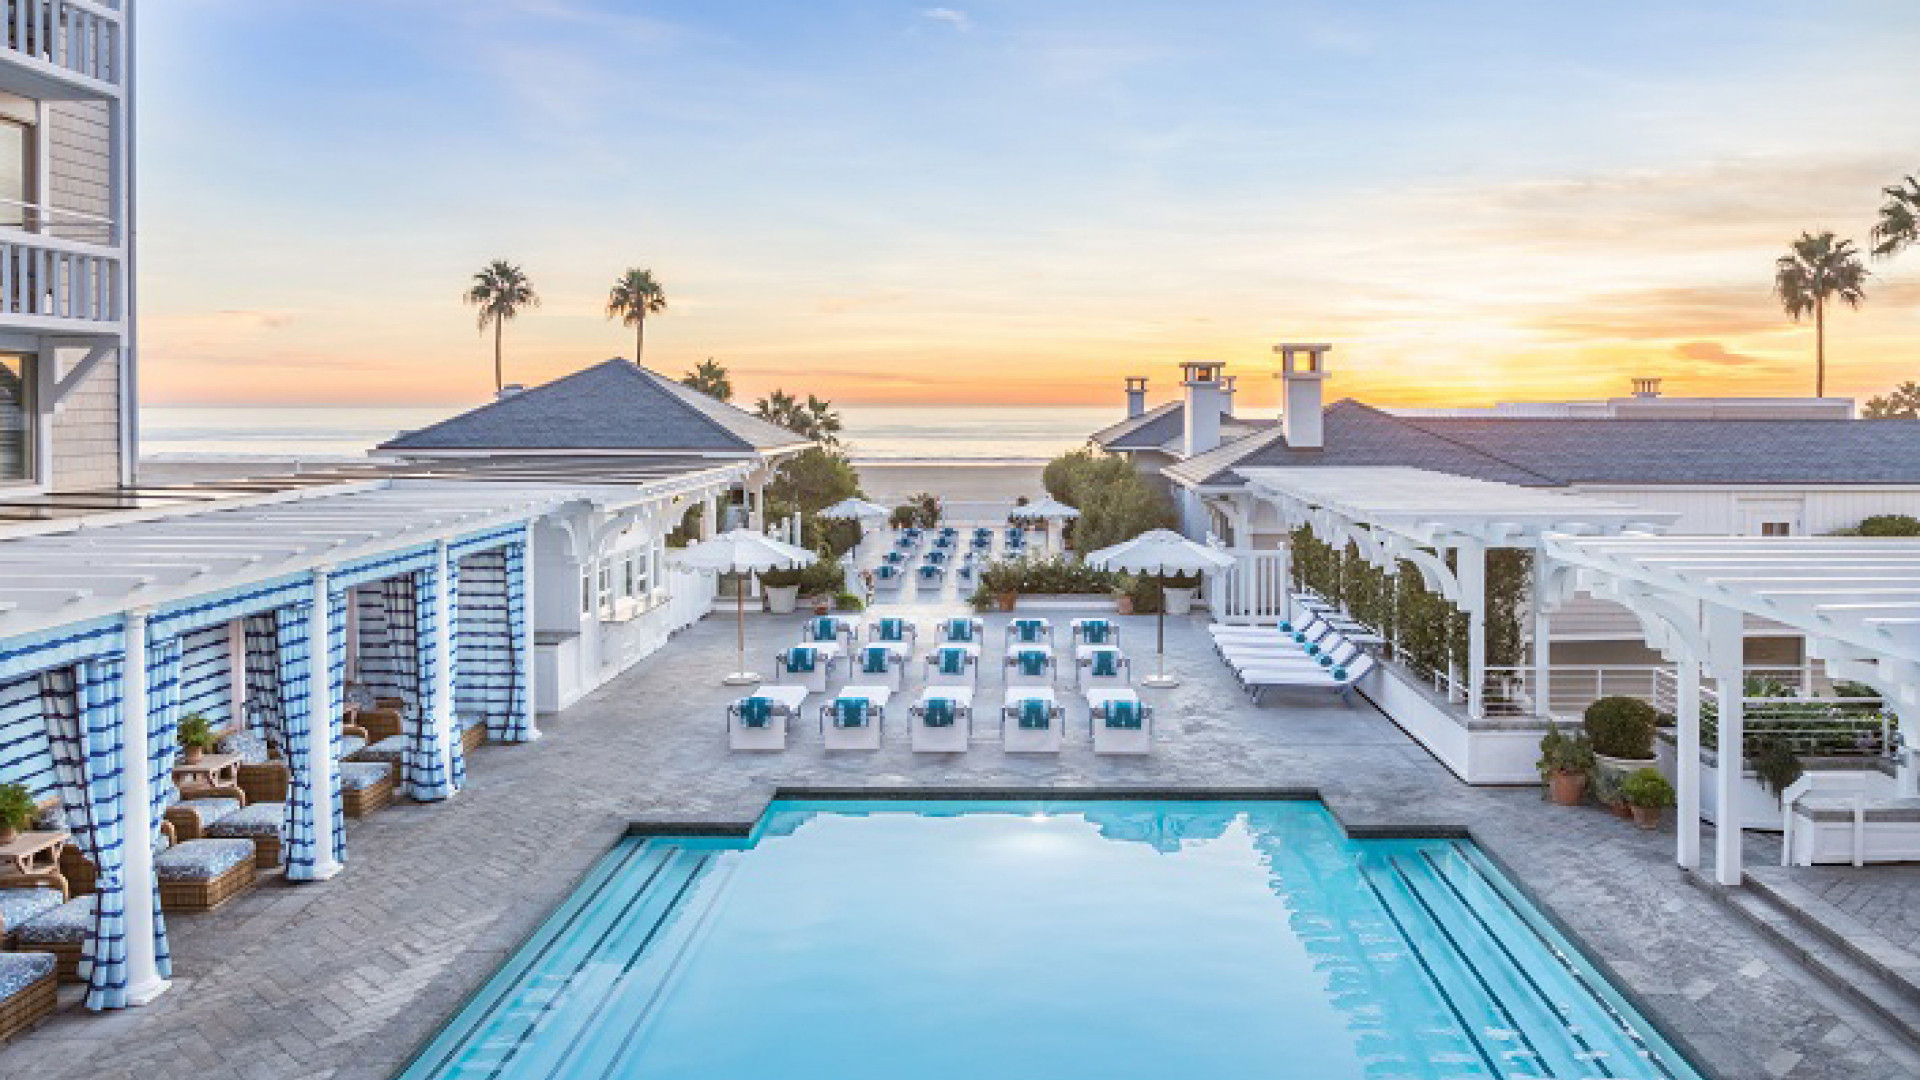 World's Most Awesome Swimming Pools: Shutters on the Beach Santa Monica